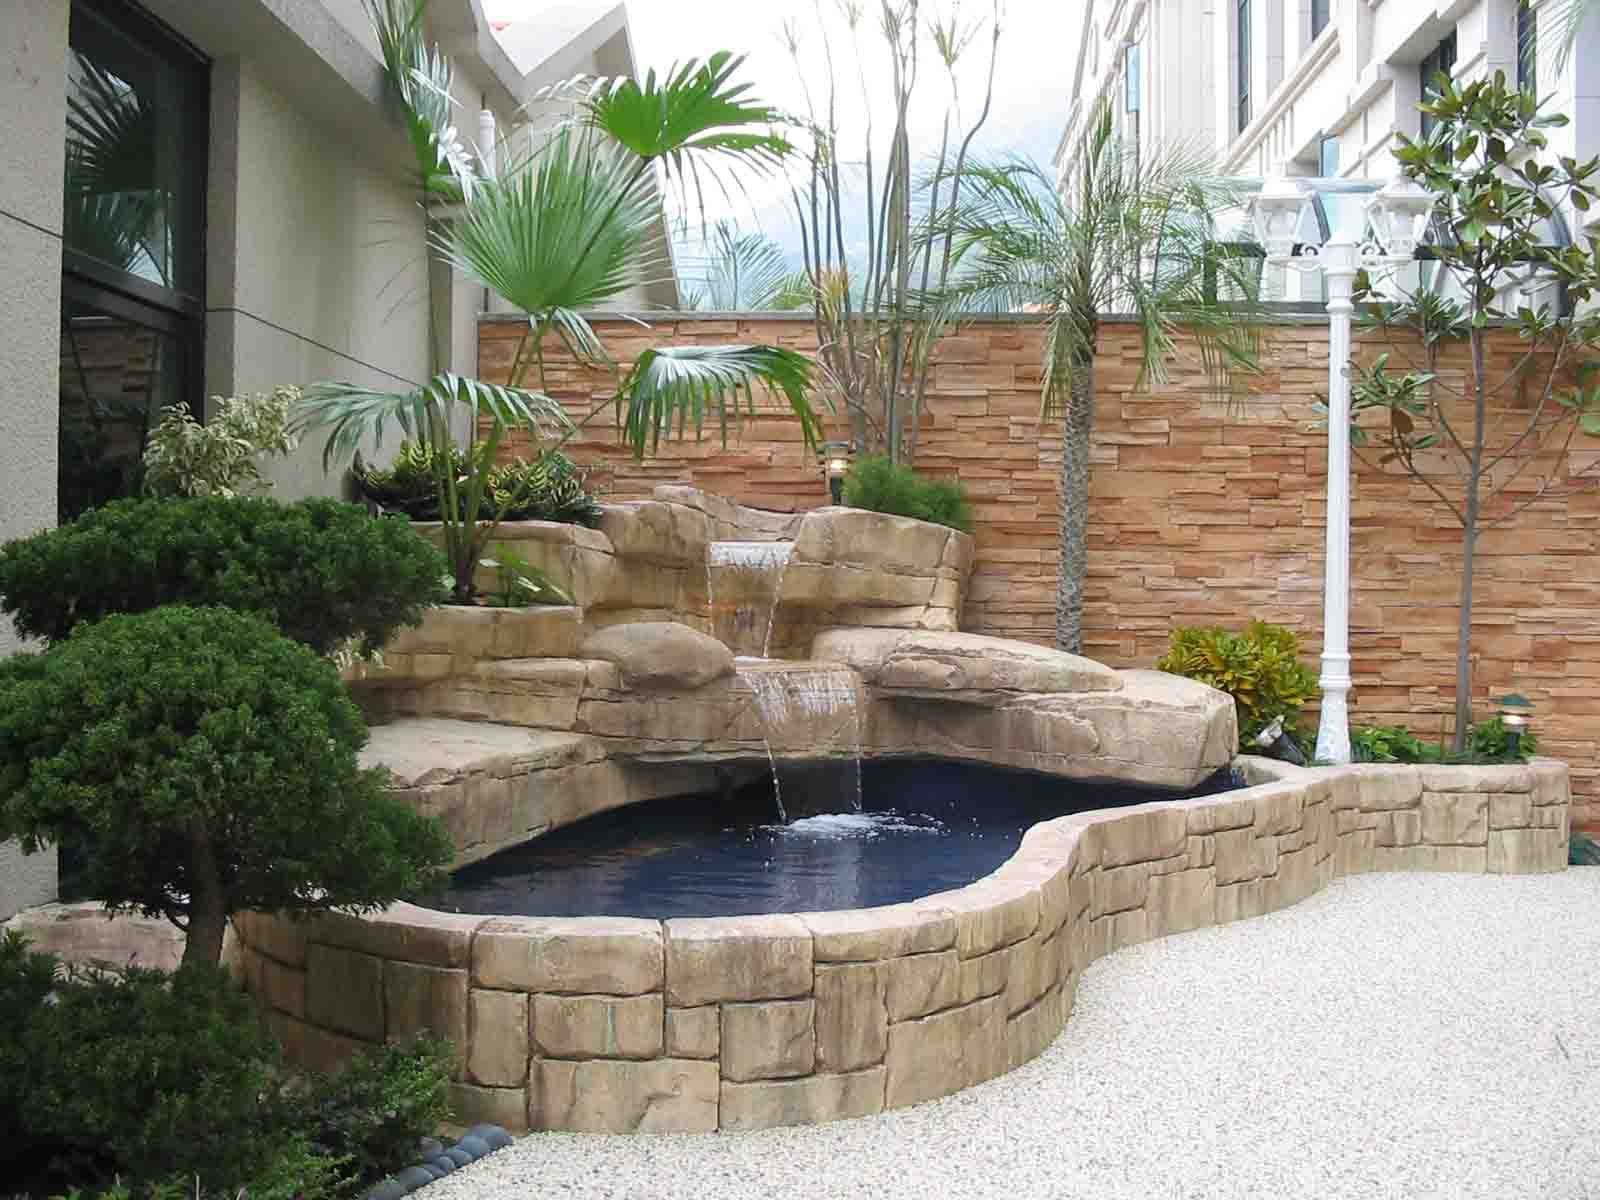 10 Raised Garden Pond Ideas, Most Stylish and also ... on Raised Garden Ponds Ideas id=89729